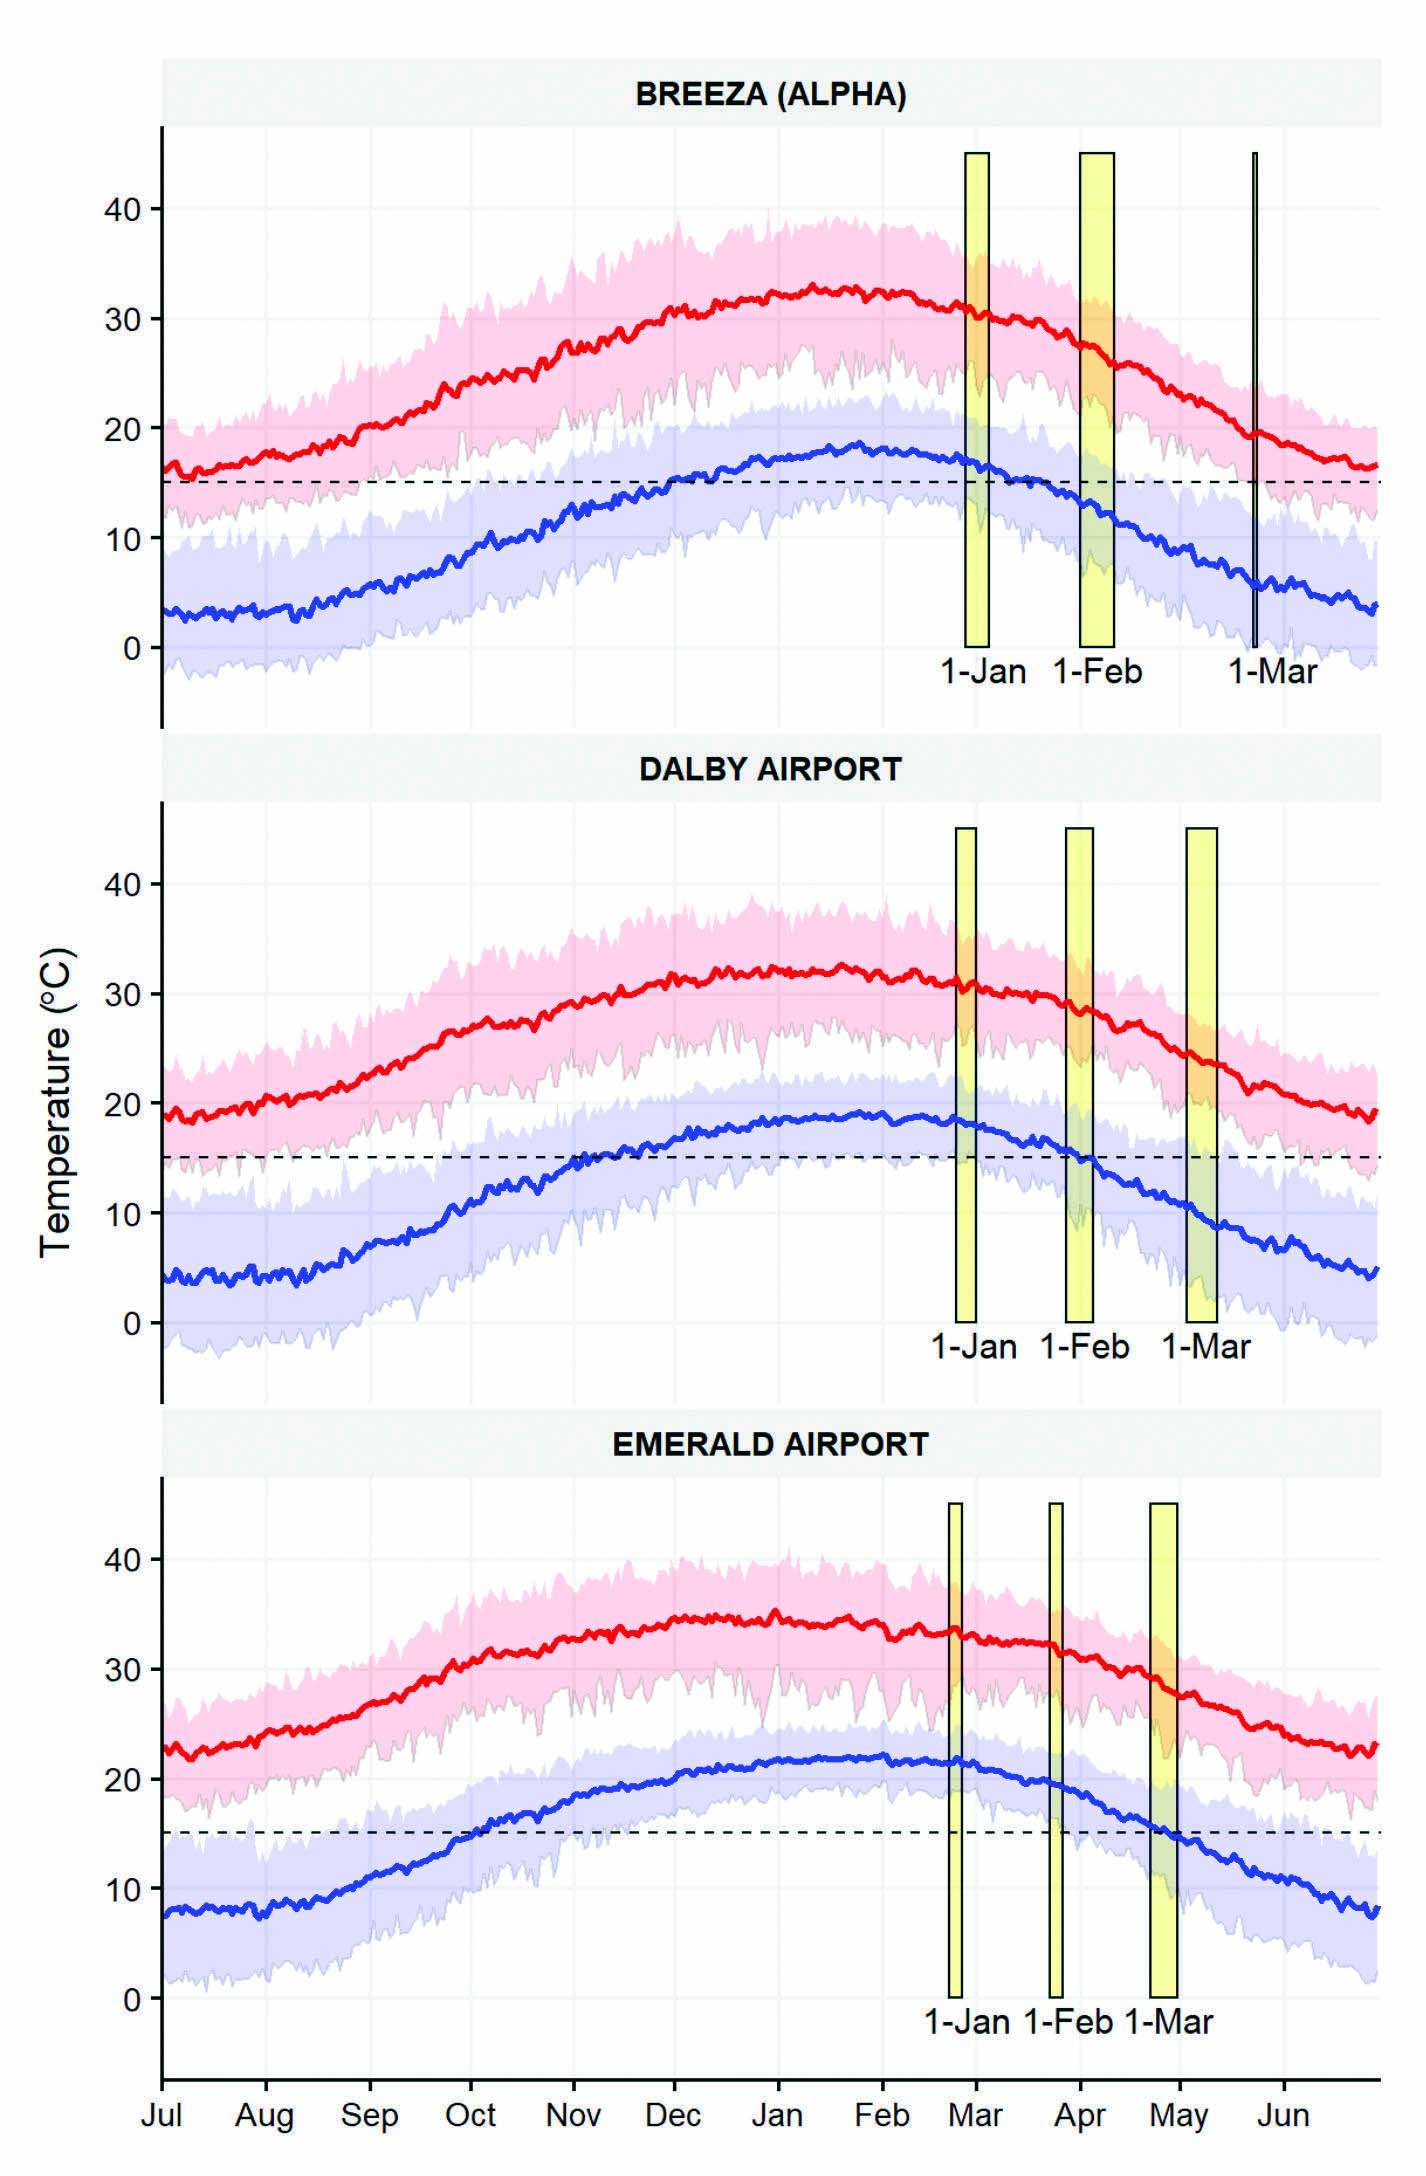 Figure 1. Daily minimum (blue) and maximum (red) temperatures for Breeza, Dalby and Emerald BOM stations from 1950 to 2019. Solid lines and shaded bands show the daily mean and spread (5 to 95th percentiles) of recorded temperatures. Horizontal dashed line shows the conservative minimum temperature threshold for successful flowering in commercial cultivars. Yellow rectangles show the simulated flowering date for a medium maturity sorghum main stem sown on 1 January, 1 February or 1 March. Flowering time is only shown for successfully simulated crops and not the failed crops that frequently occur for late plantings, especially at Breeza and Dalby. SOURCE Dr Joe Eyre